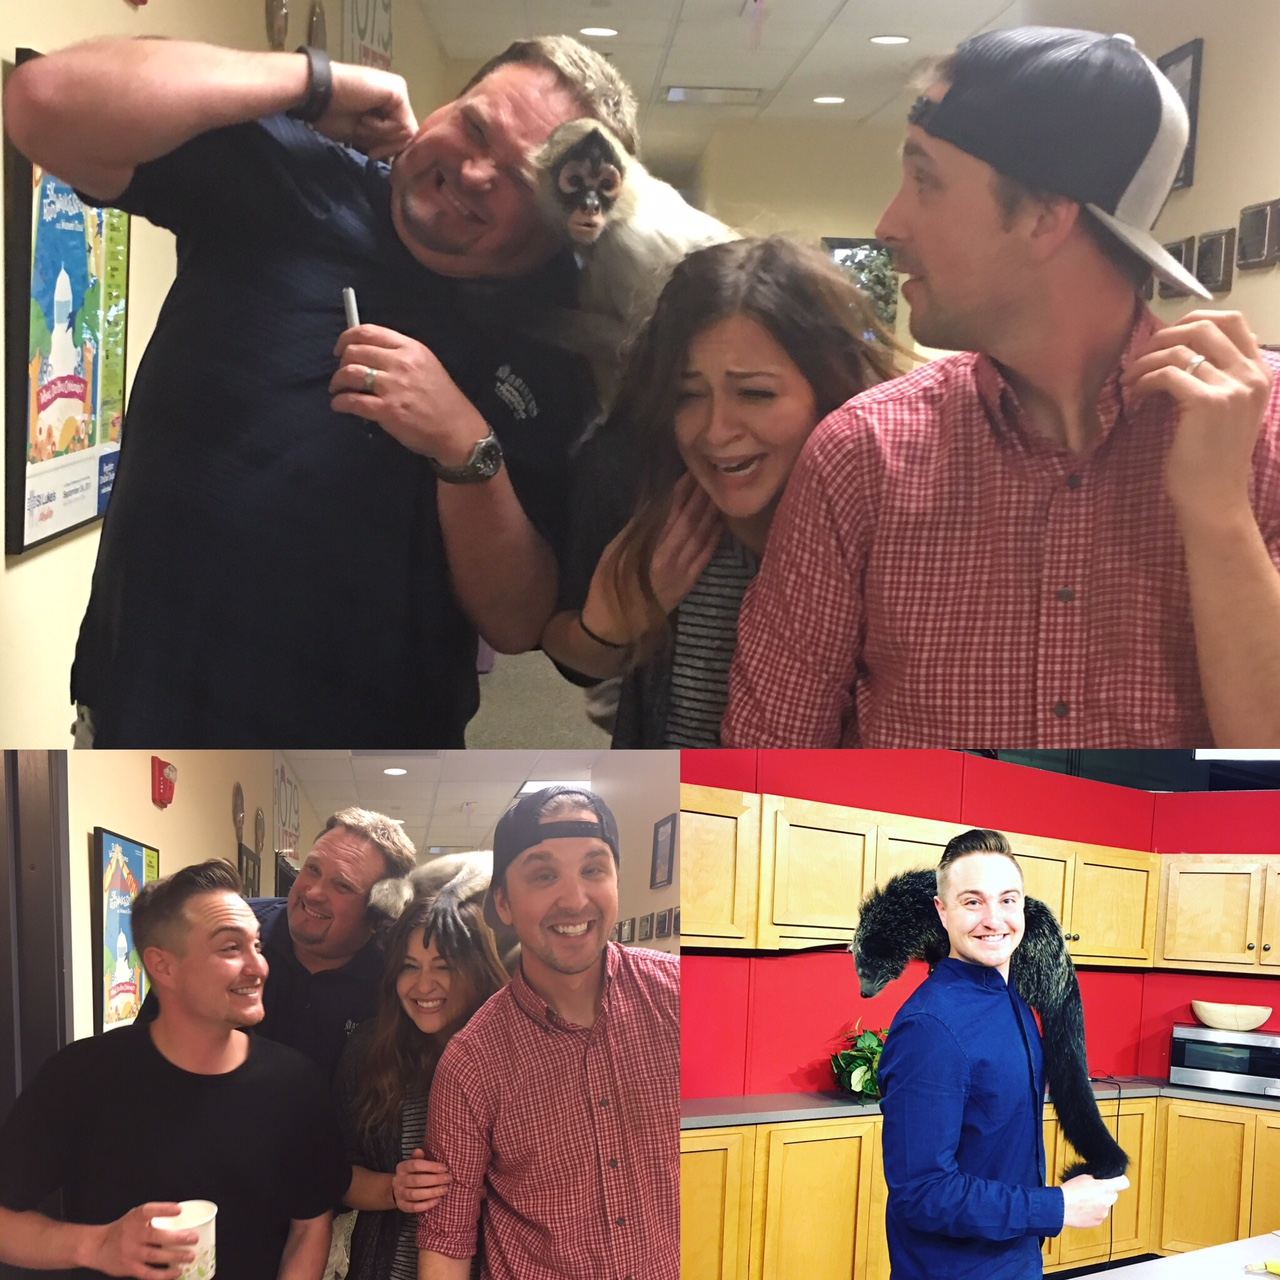 Top/Bottom Left: Mowgli the Spider Monkey from Babby Farms clinging to Mike Kasper, My sister Micah, and Producer JD at MIx 106 Radio. Bottom Right: Hanging out with a Binturong in the KTVB kitchen set.